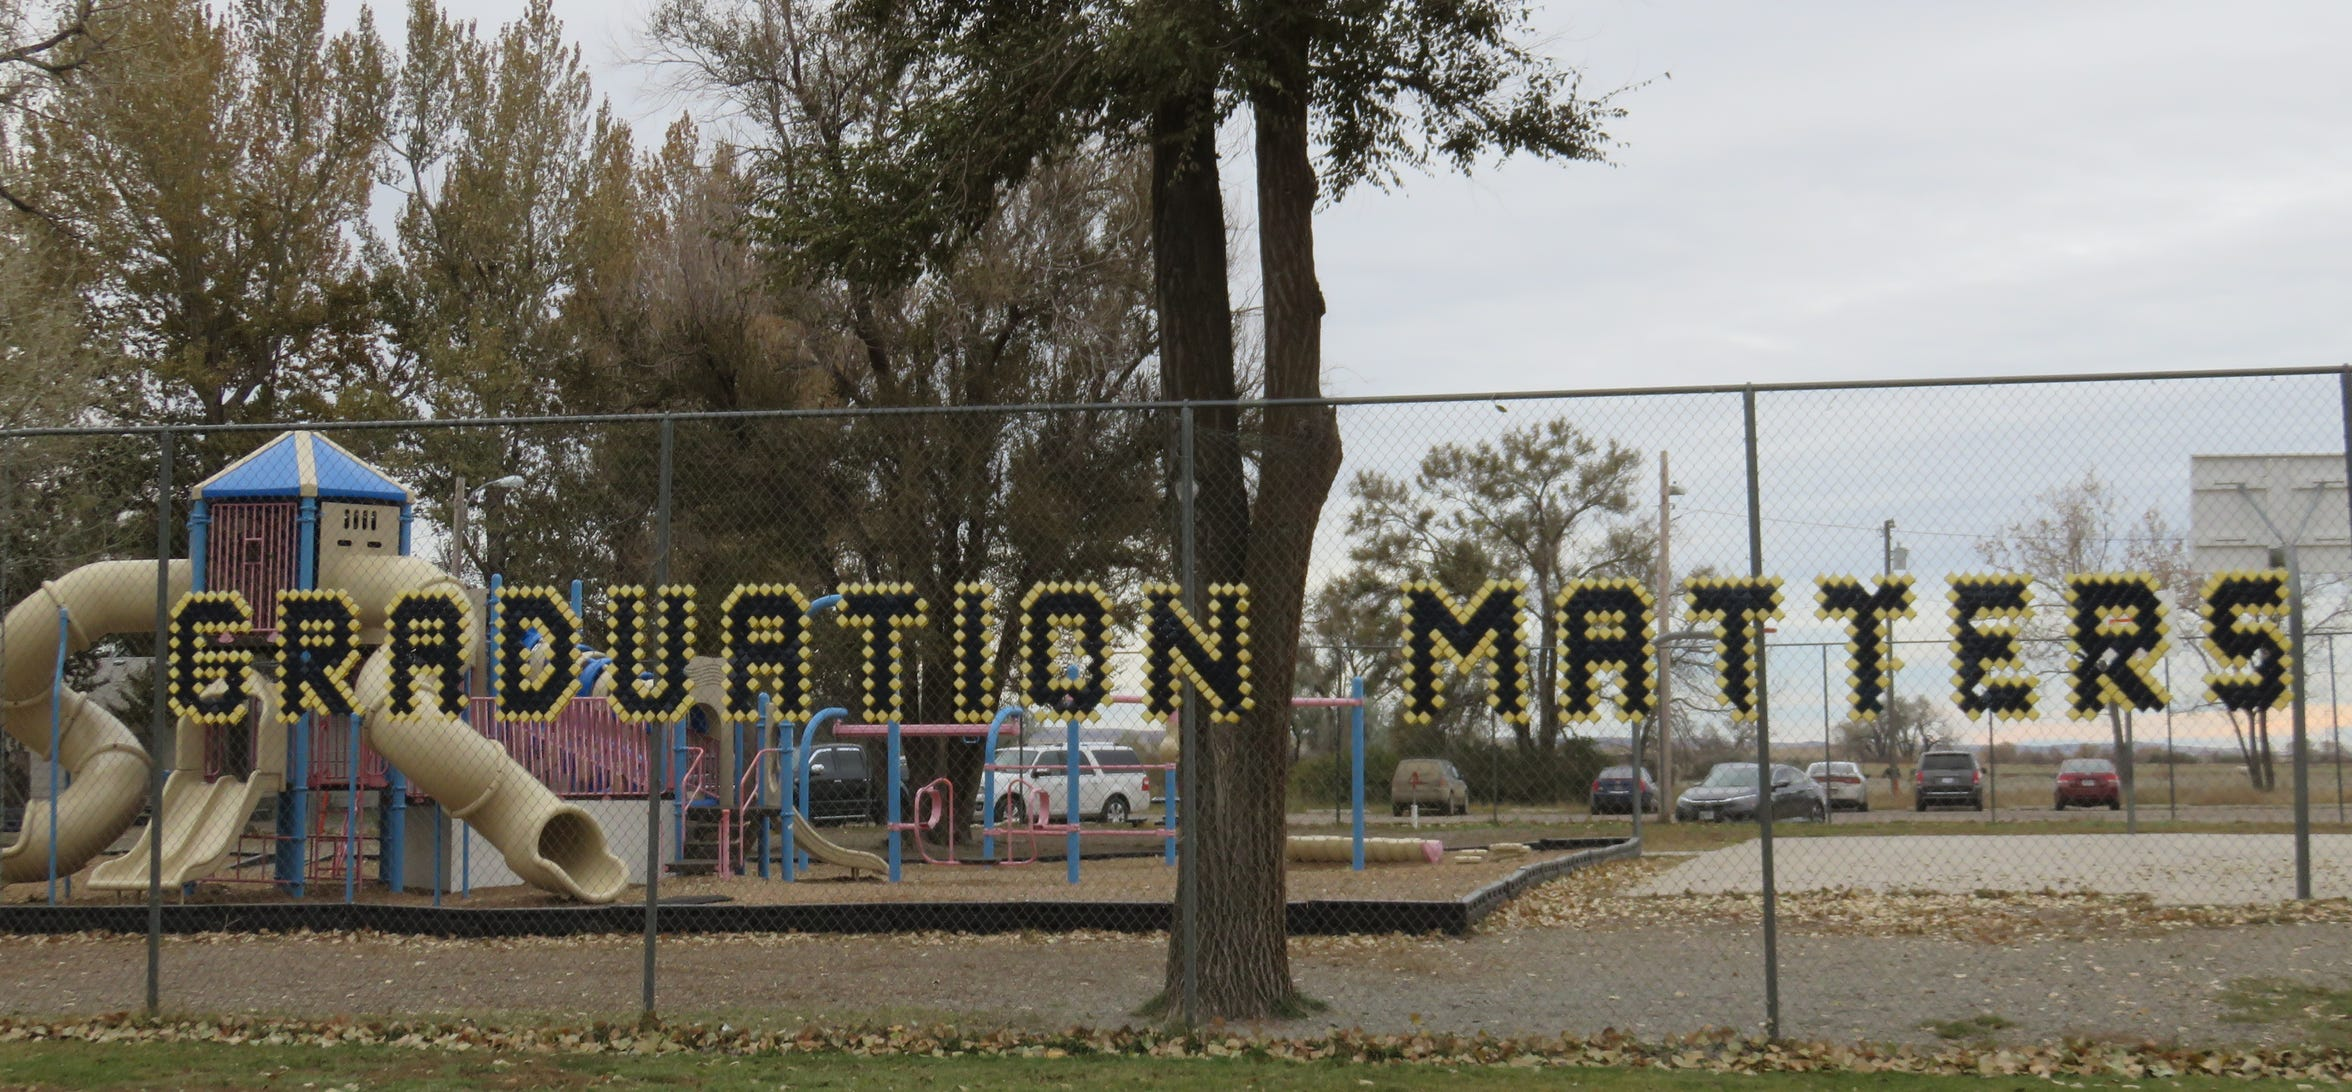 A motivation message outside the playground at Box Elder School.